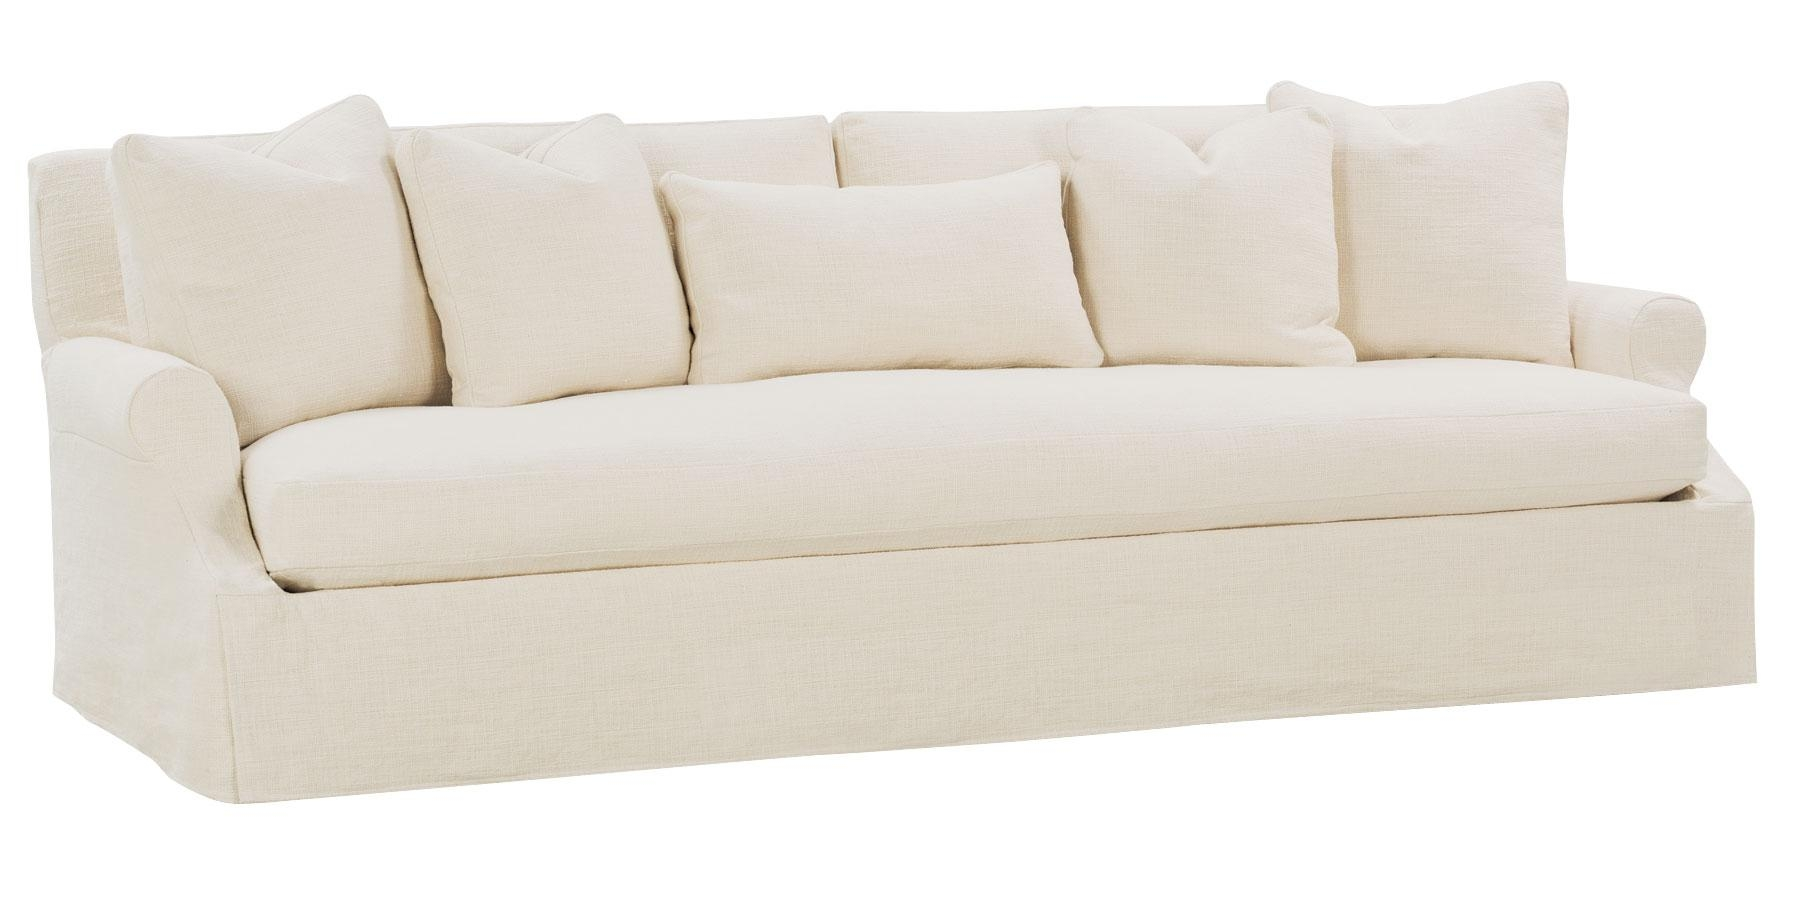 Slipcovered 3 Lenghts Select A Size Bench Seat Extra Long Grand Inside Slipcover Style Sofas (View 14 of 20)